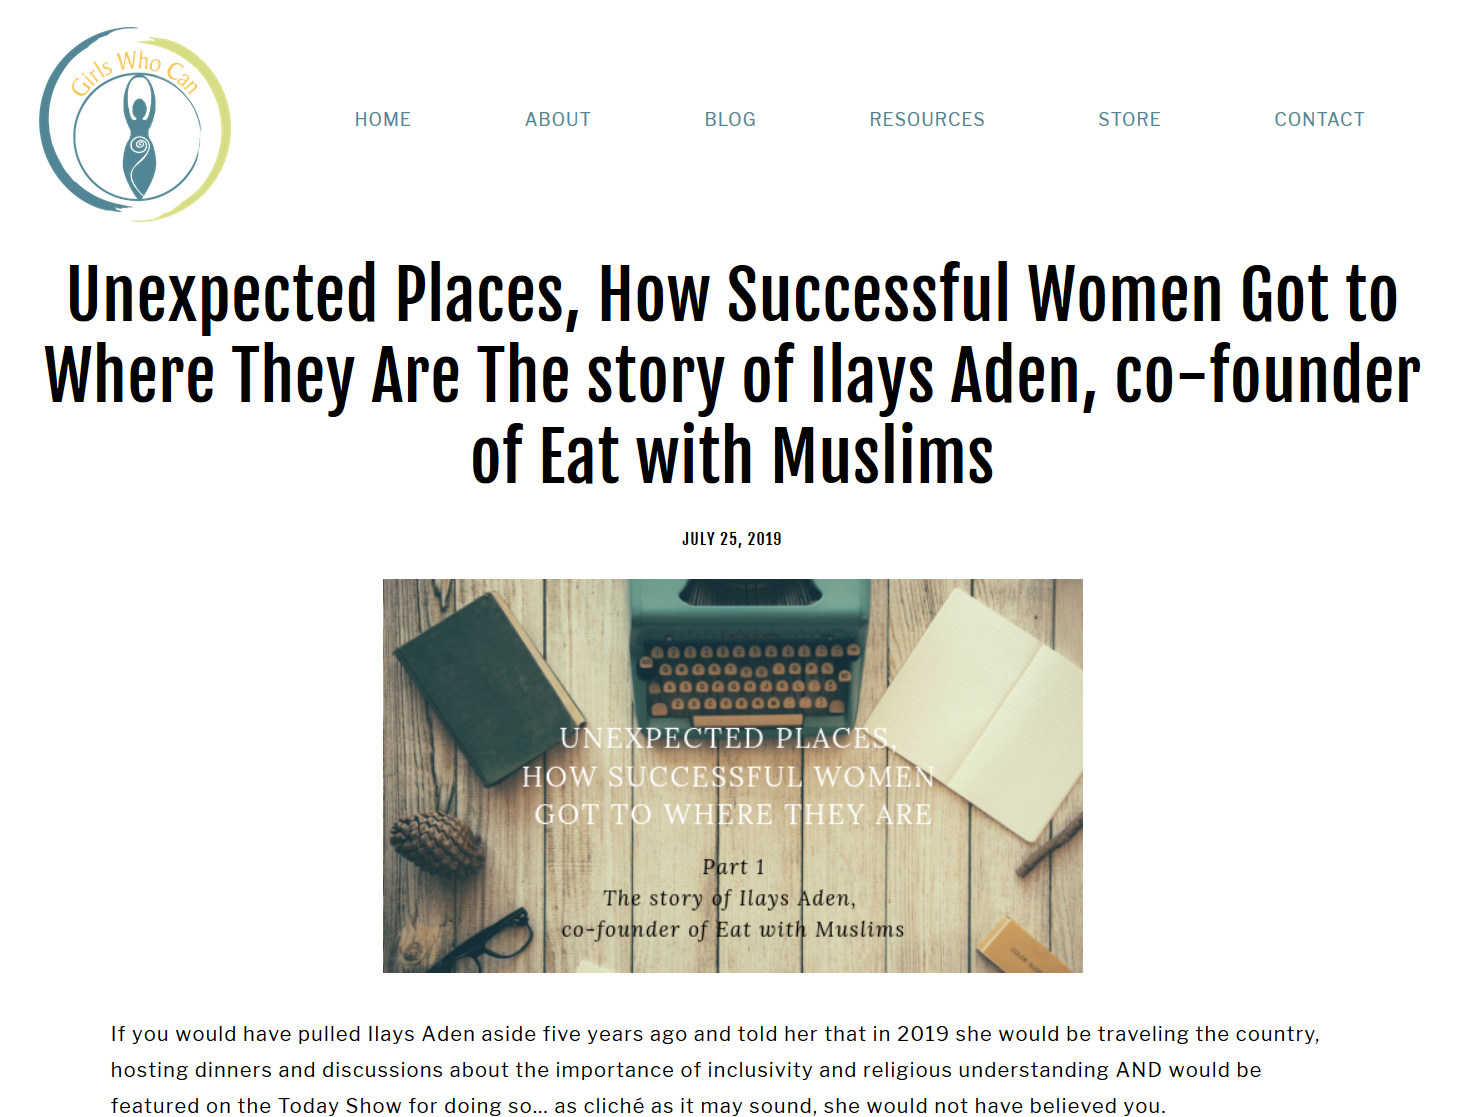 Unexpected Places, How Successful Women Got to Where They Are: The story of Ilays Aden, co-founder of Eat with Muslims - 7/25/2019: Eat With Muslims stemmed from Ilays' and Fathia's desire to help change the stories that were being told about Muslims, African Americans and Latinos. They wanted to provide a simple platform for people from all backgrounds to break bread together and get to learn new things about one another. As their dinners became more frequent, they realized the need to talk more openly about Islam and religion in general.